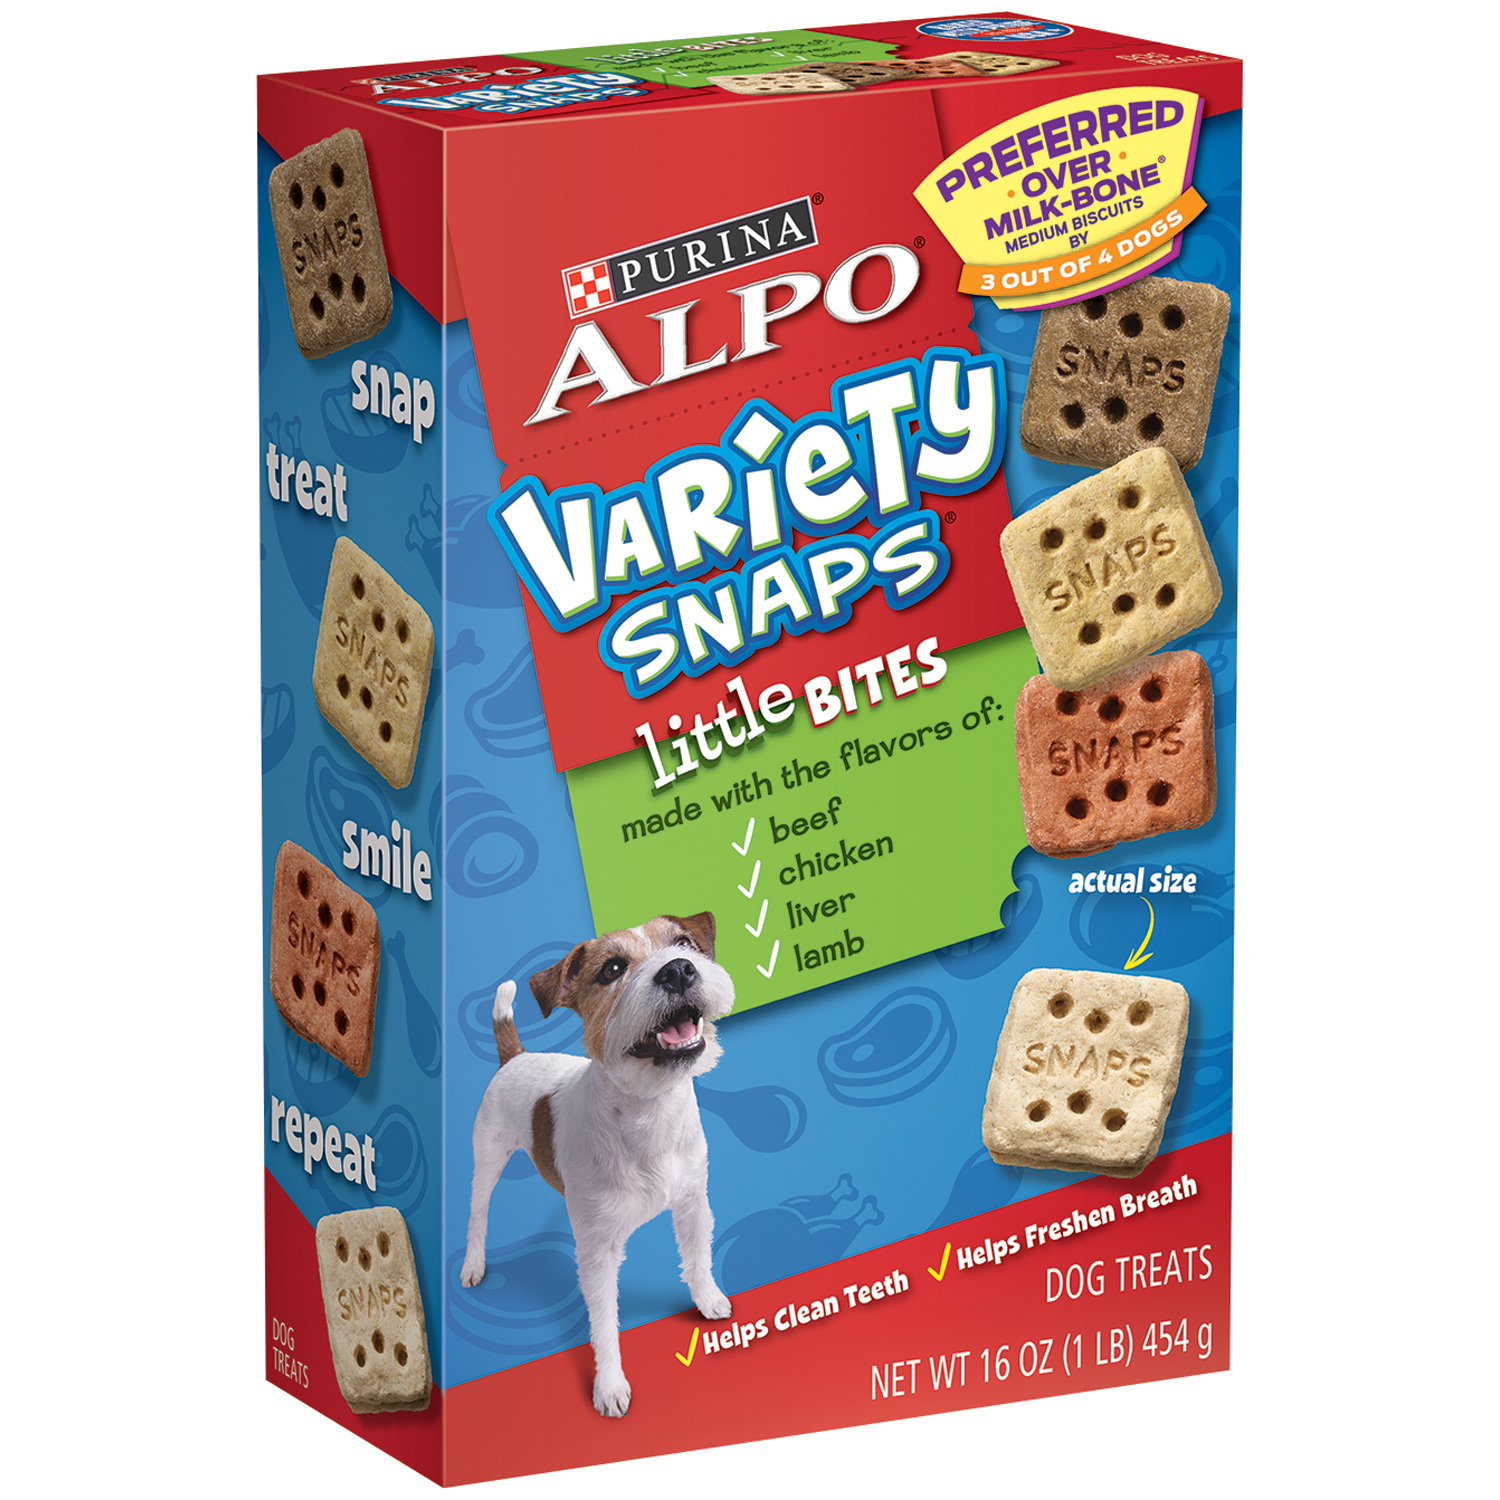 Purina ALPO Variety Snaps Little Bites Dog Treats with Beef, Chicken, Liver & Lamb Flavors 16 oz. Box